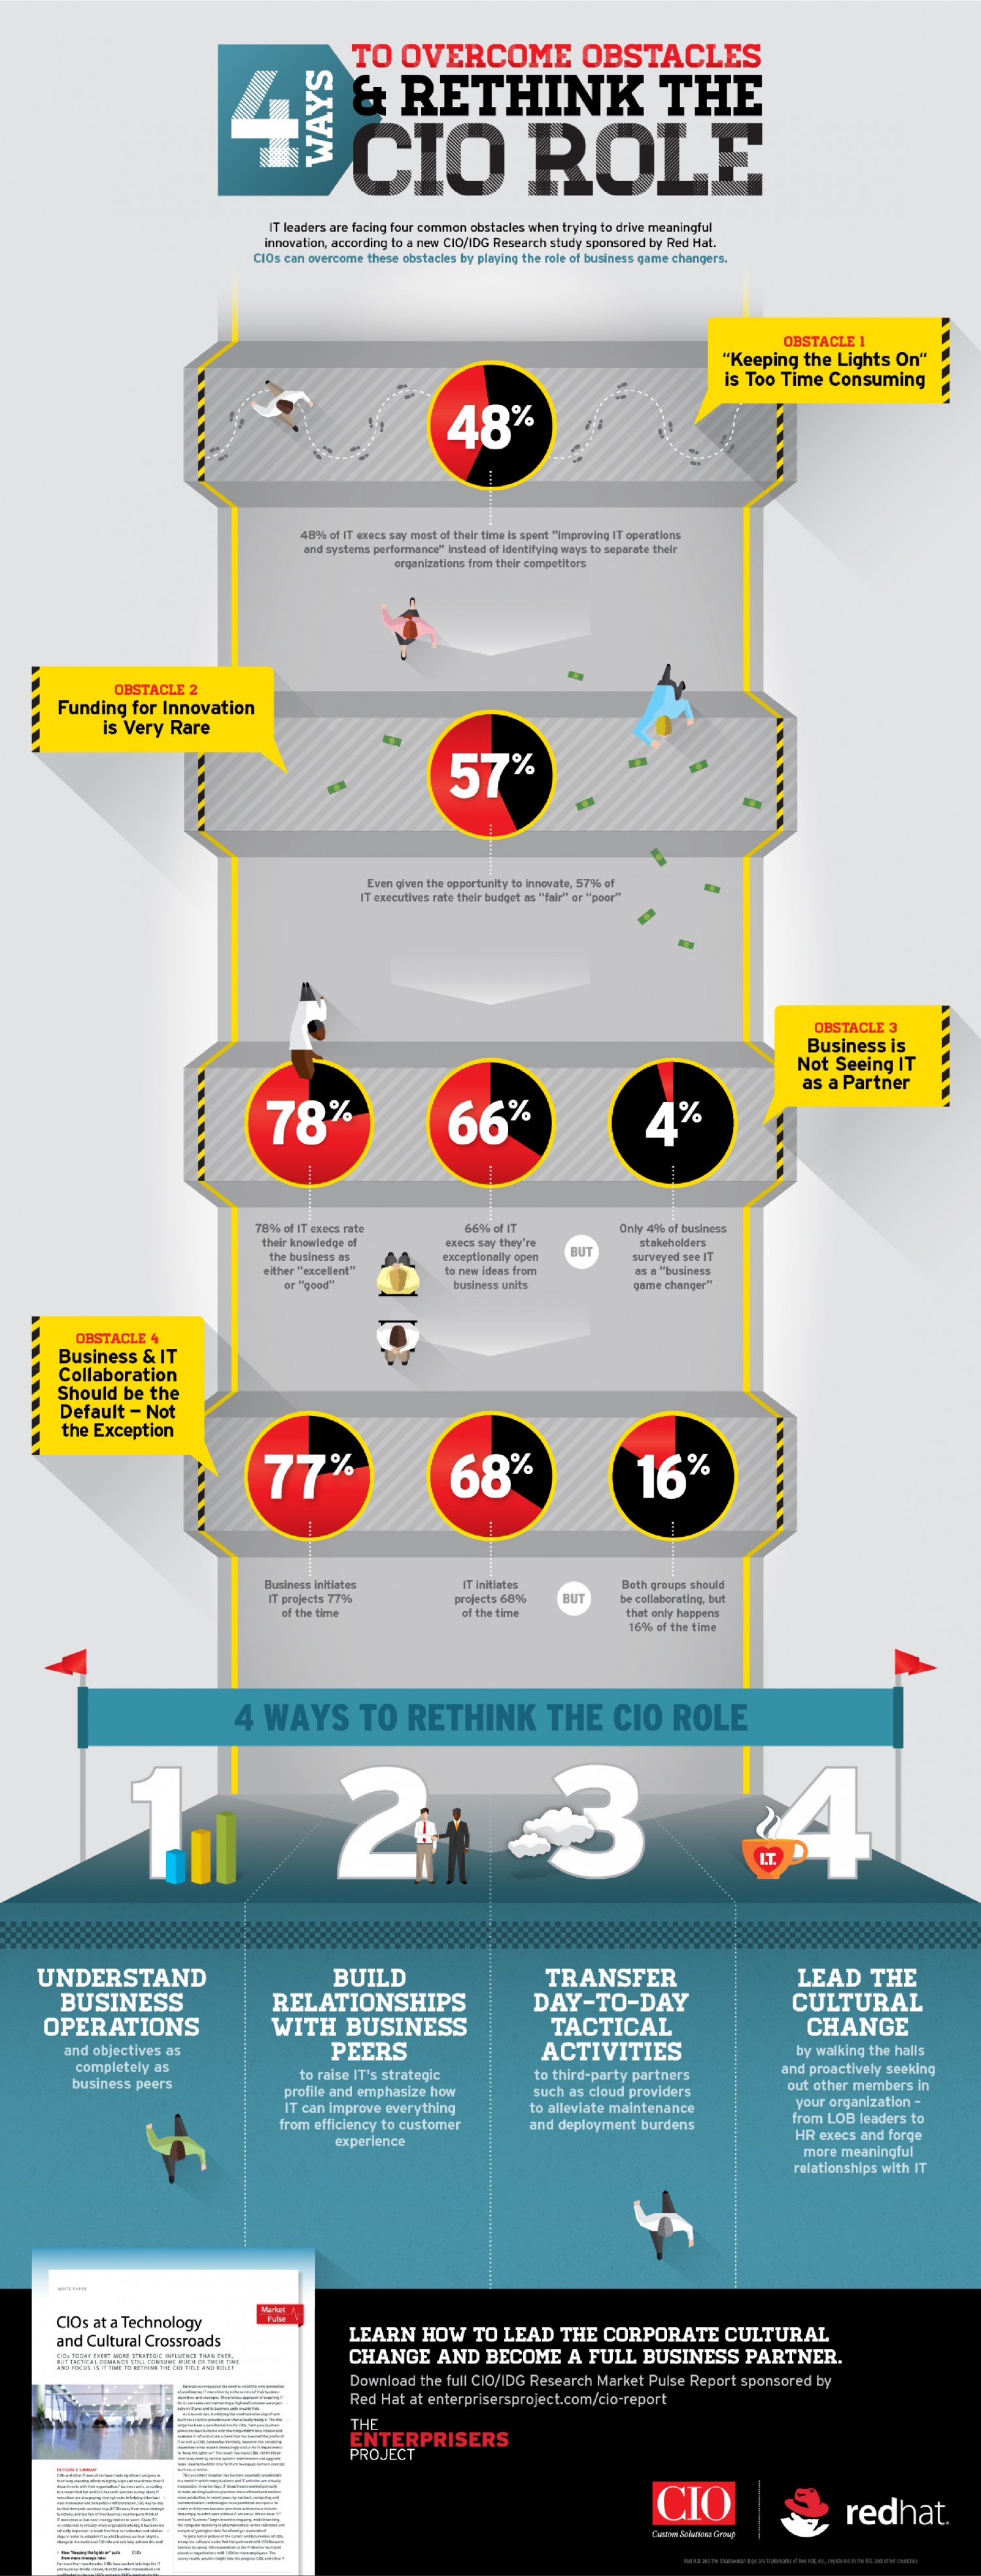 4 Ways to Overcome Obstacles and Rethink the CIO Role Infographic